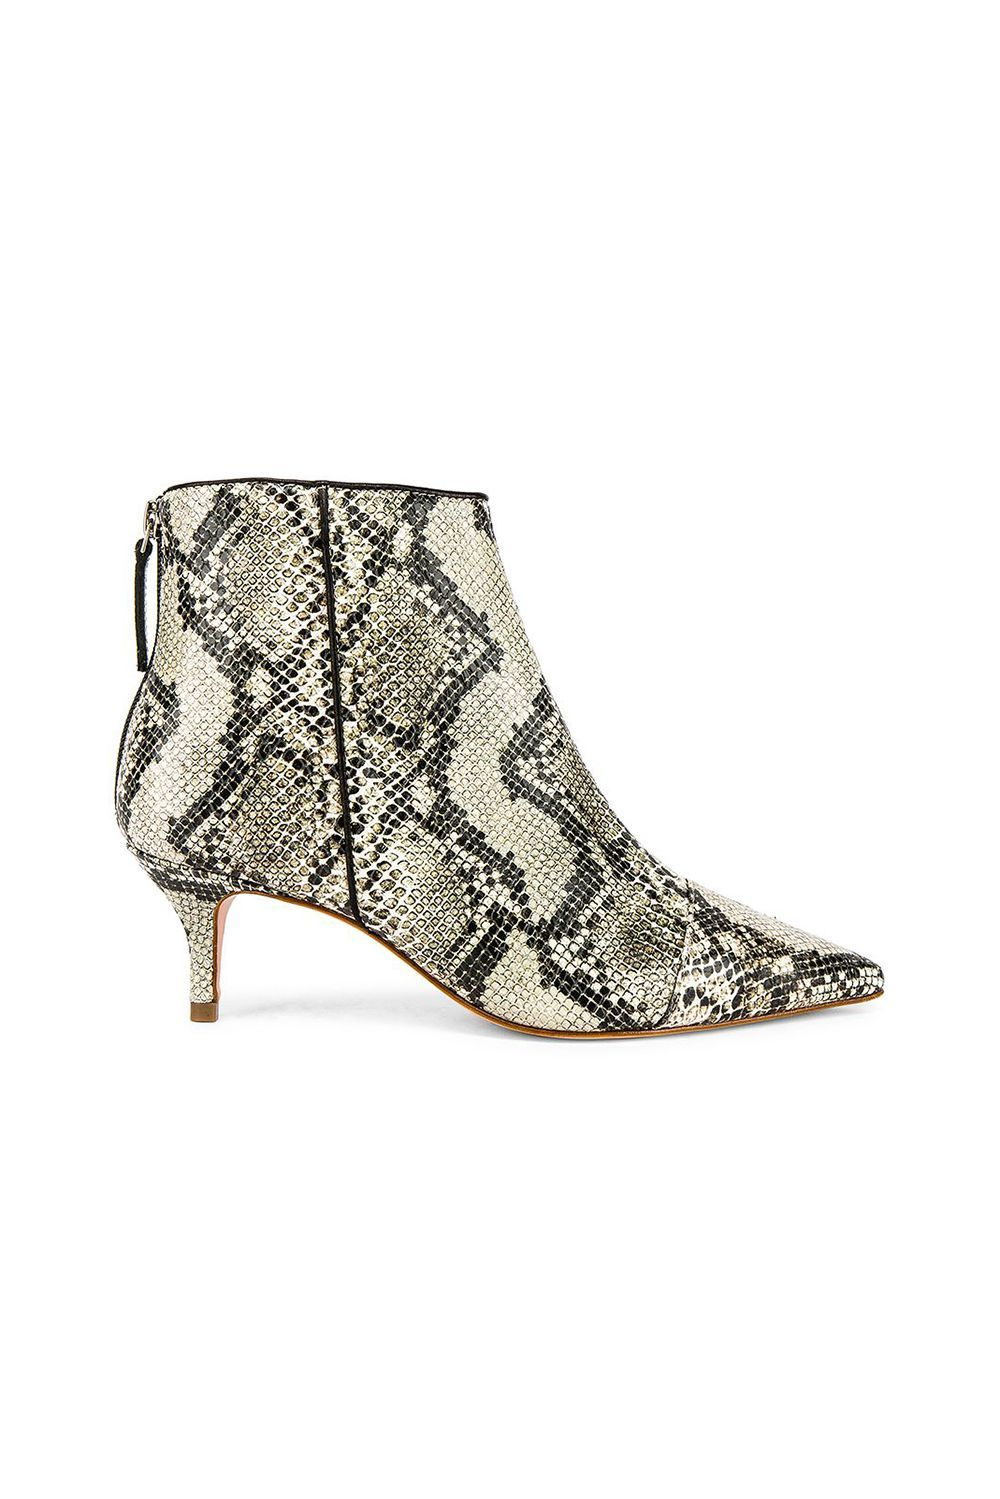 Snakeskin Kitten-Heel Booties RAYE revolve.com $228.00 SHOP IT These sleek kitten heels feature green earthy hues, and if New York Fashion Week was any indication, you'll see this palette a lot come fall 2019 . Be ahead of the trend and start wearing them now with crop jeans and linen jumpsuits.